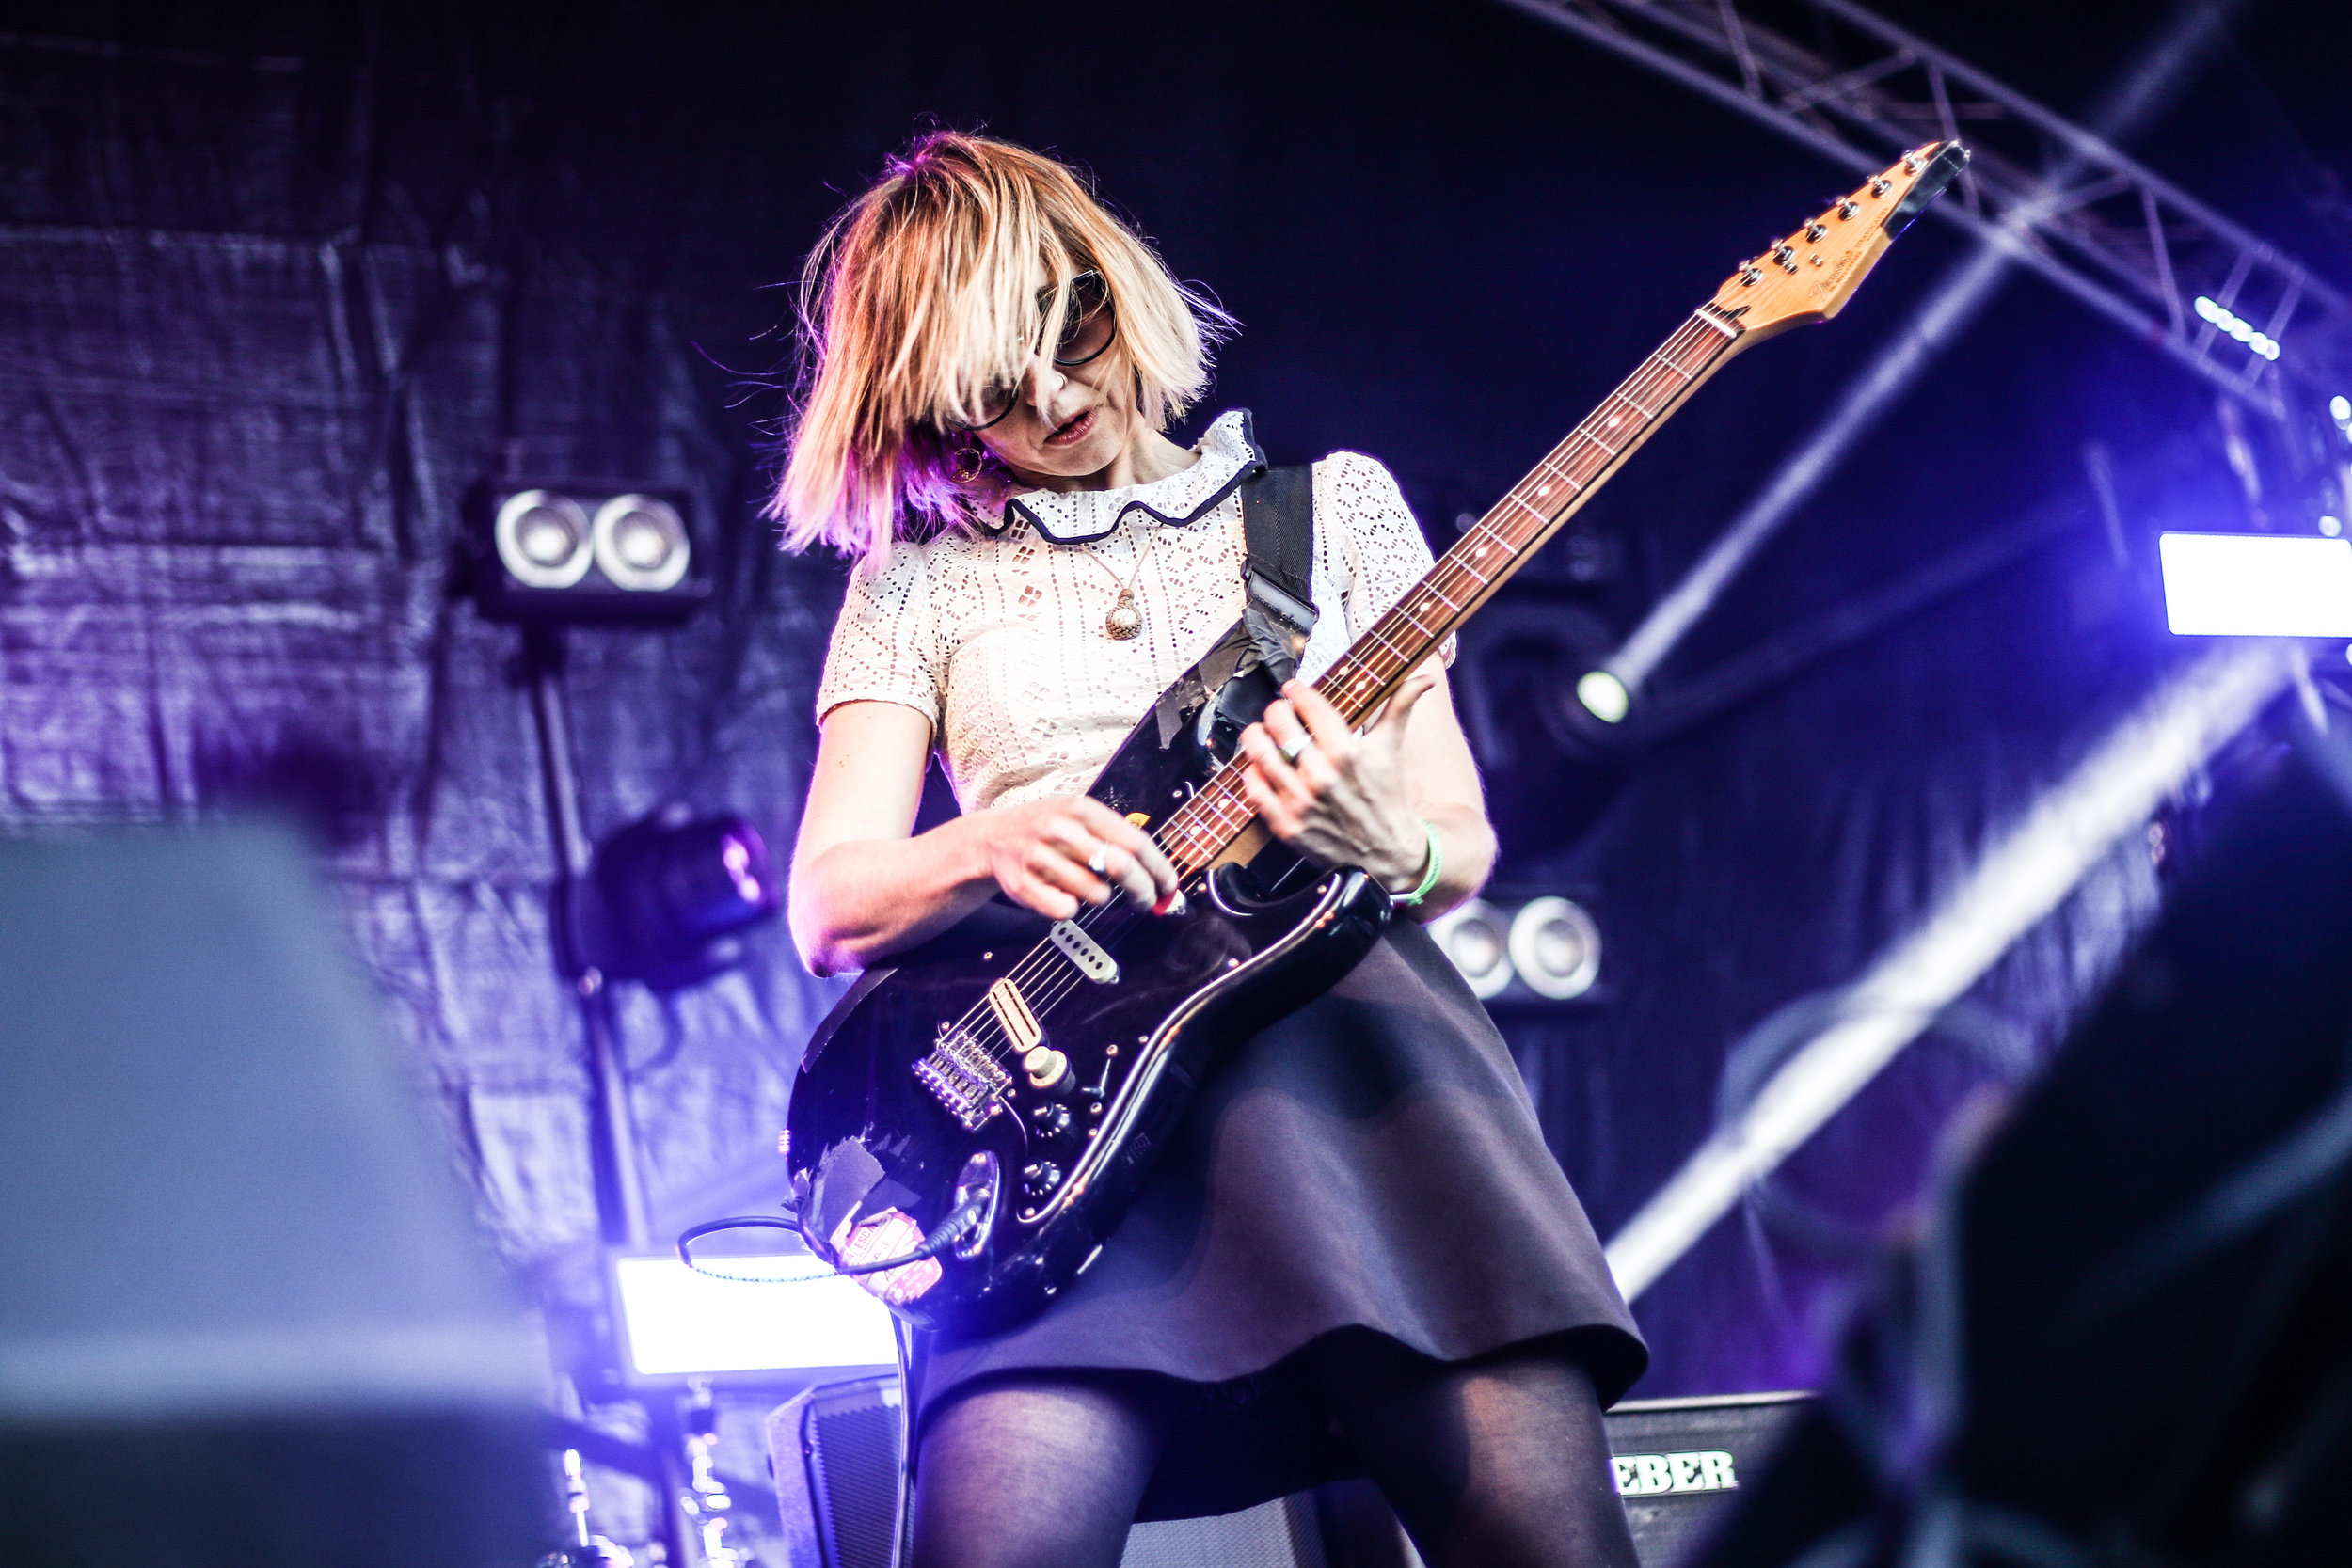 The Joy Formidable - Hardwick Live - 18-19-08.19-6.jpg